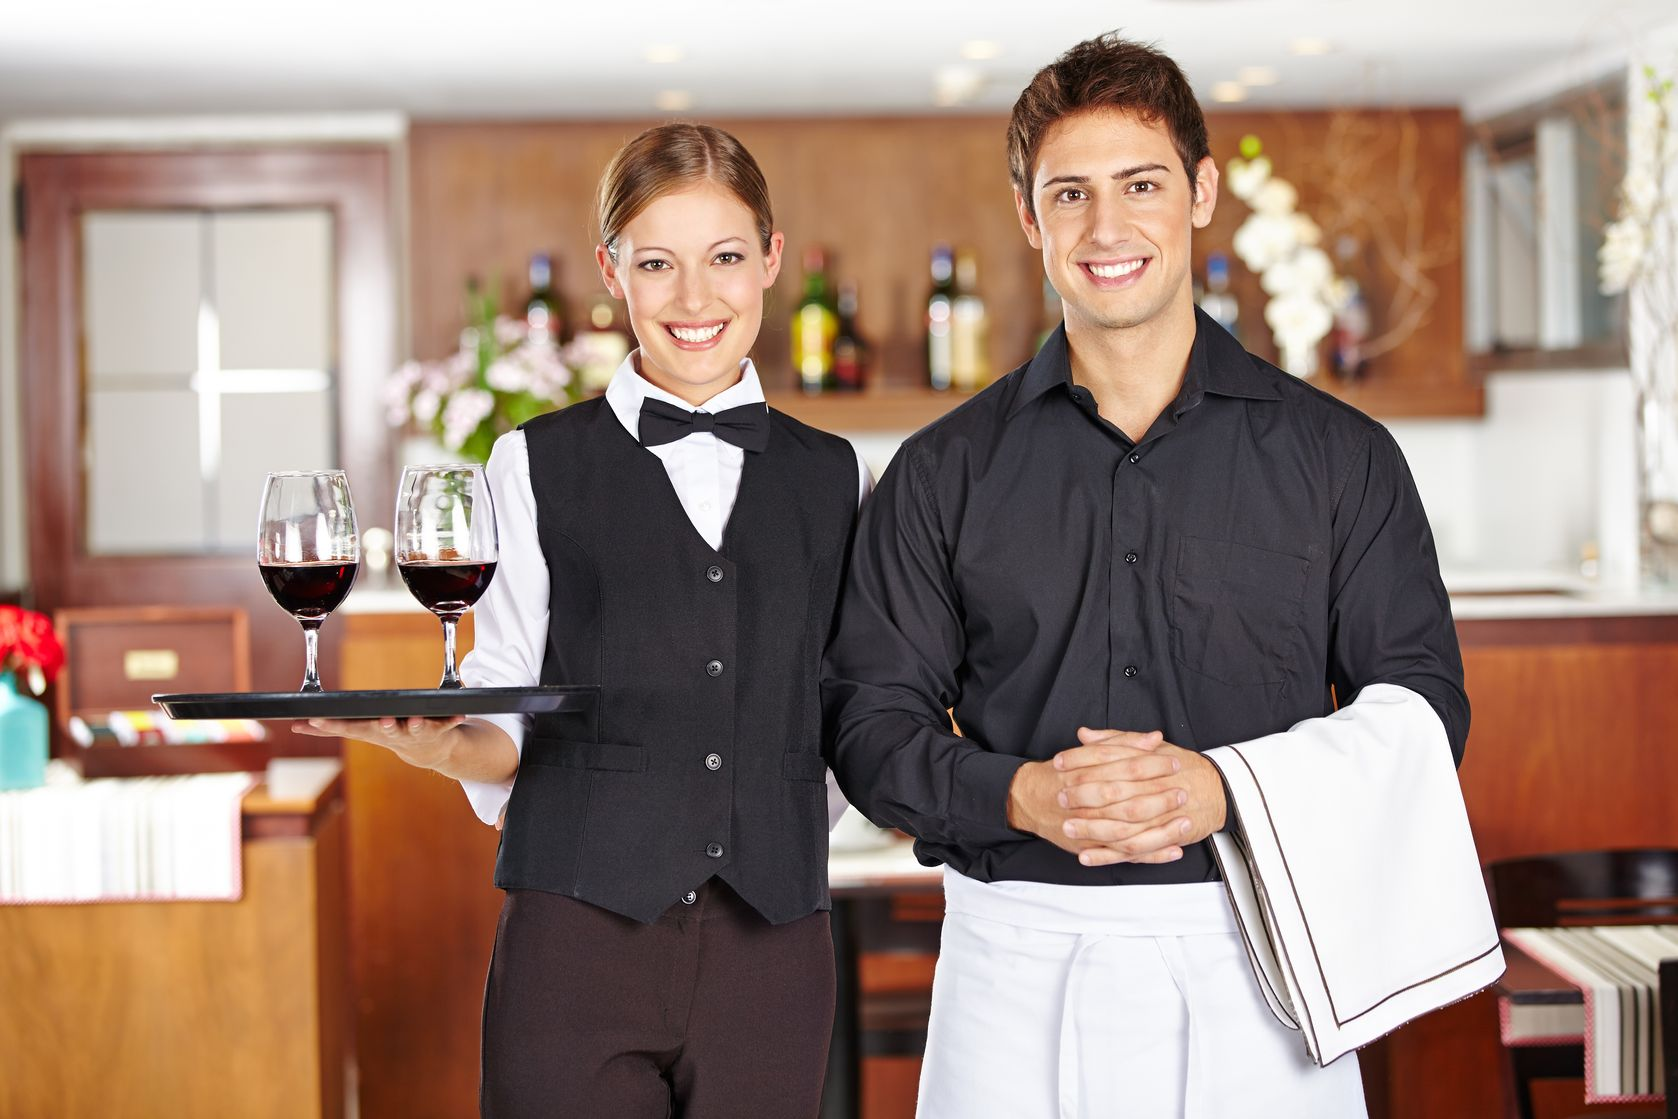 Hospitality and Catering Business for sale in Geelong